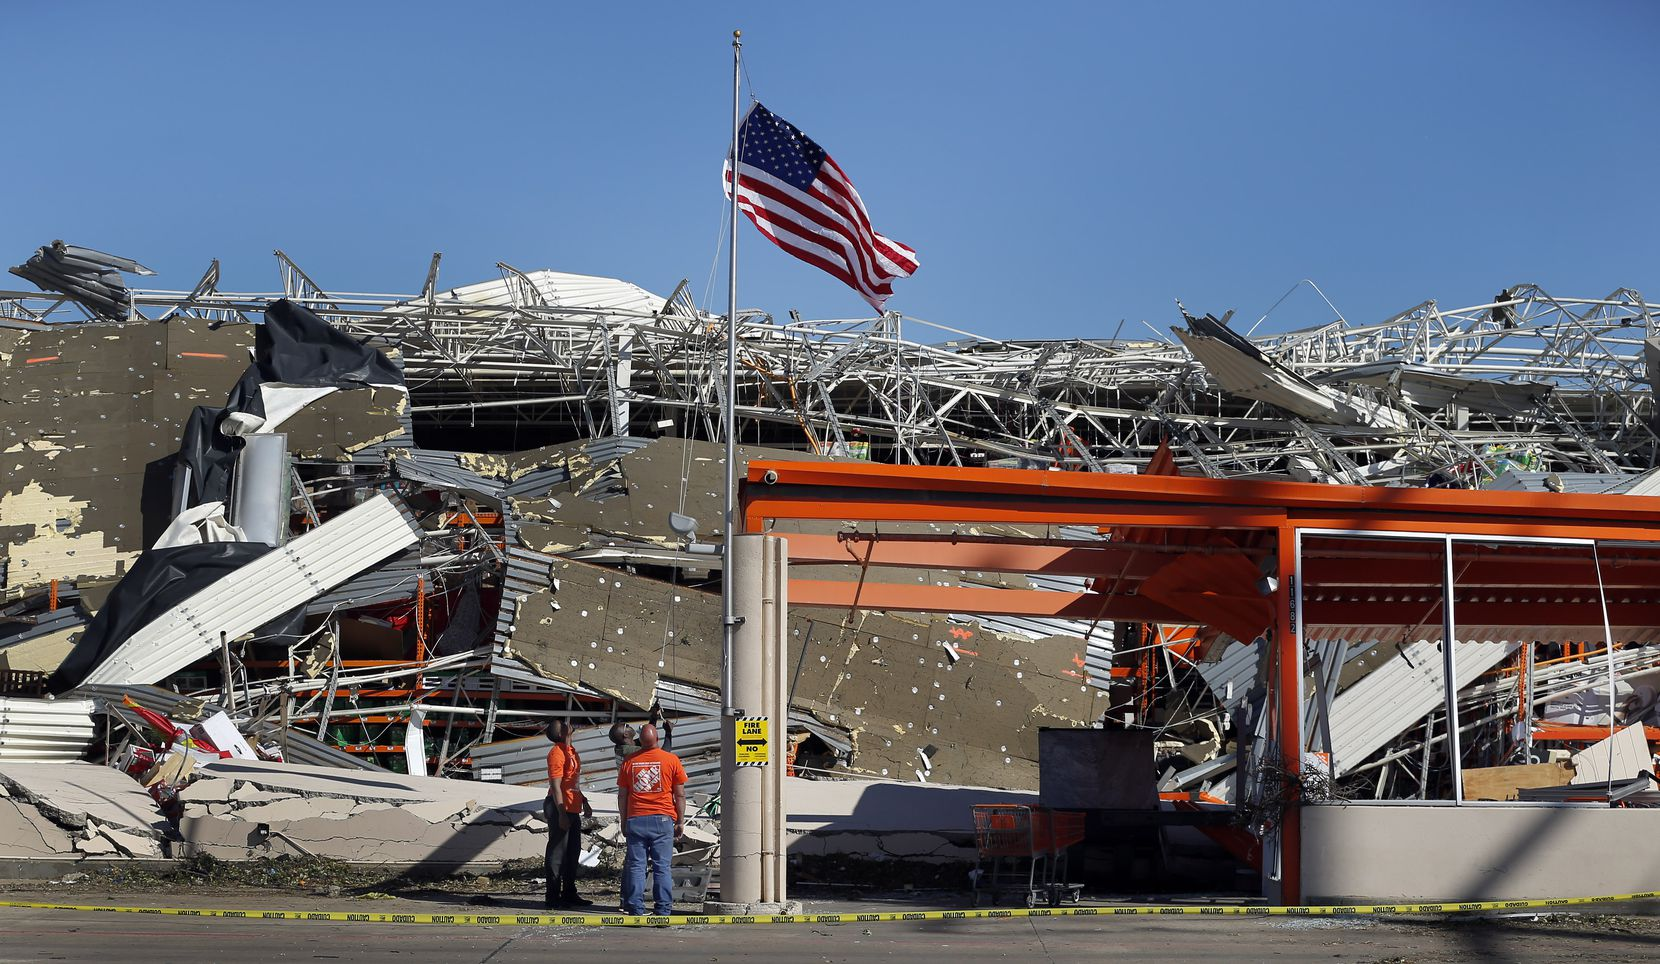 The Home Depot employees A.J. Kobena (center) raises the U.S. flag on the slightly bent flagpole outside the destroyed store on N. Central Expressway in Dallas, Monday, October 21, 2019. Jining him were fellow employees Jonathan Shields and Jordan Jasper. A tornado tore through the entire neighborhood knocking down trees and ripping roofs from homes. (Tom Fox/The Dallas Morning News)